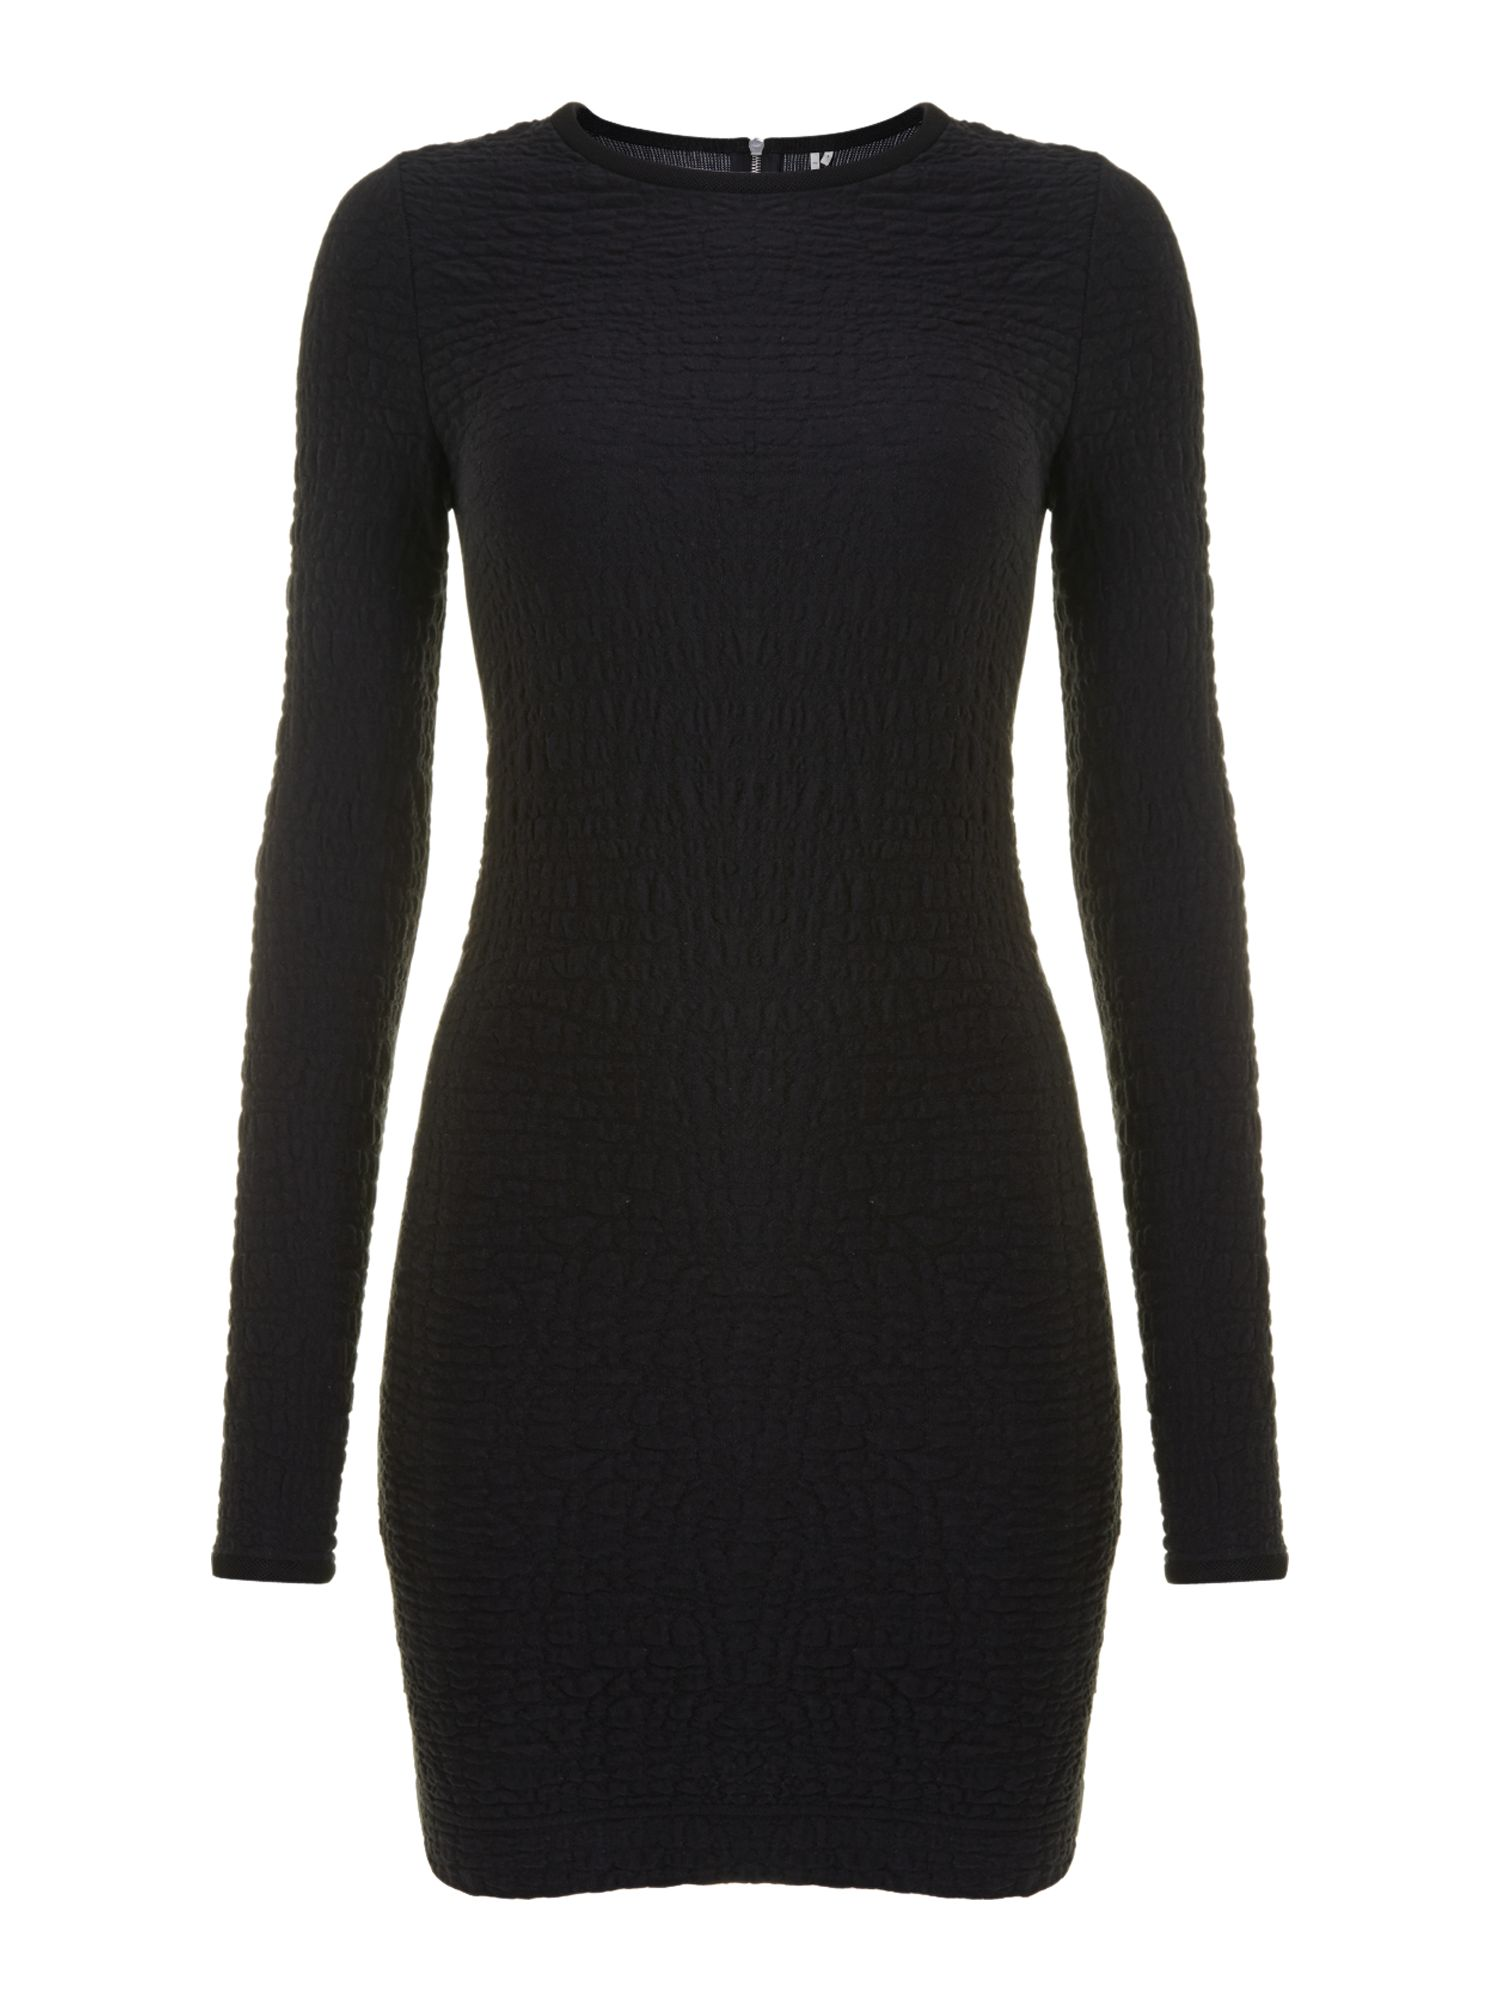 Knitted ripple effect dress